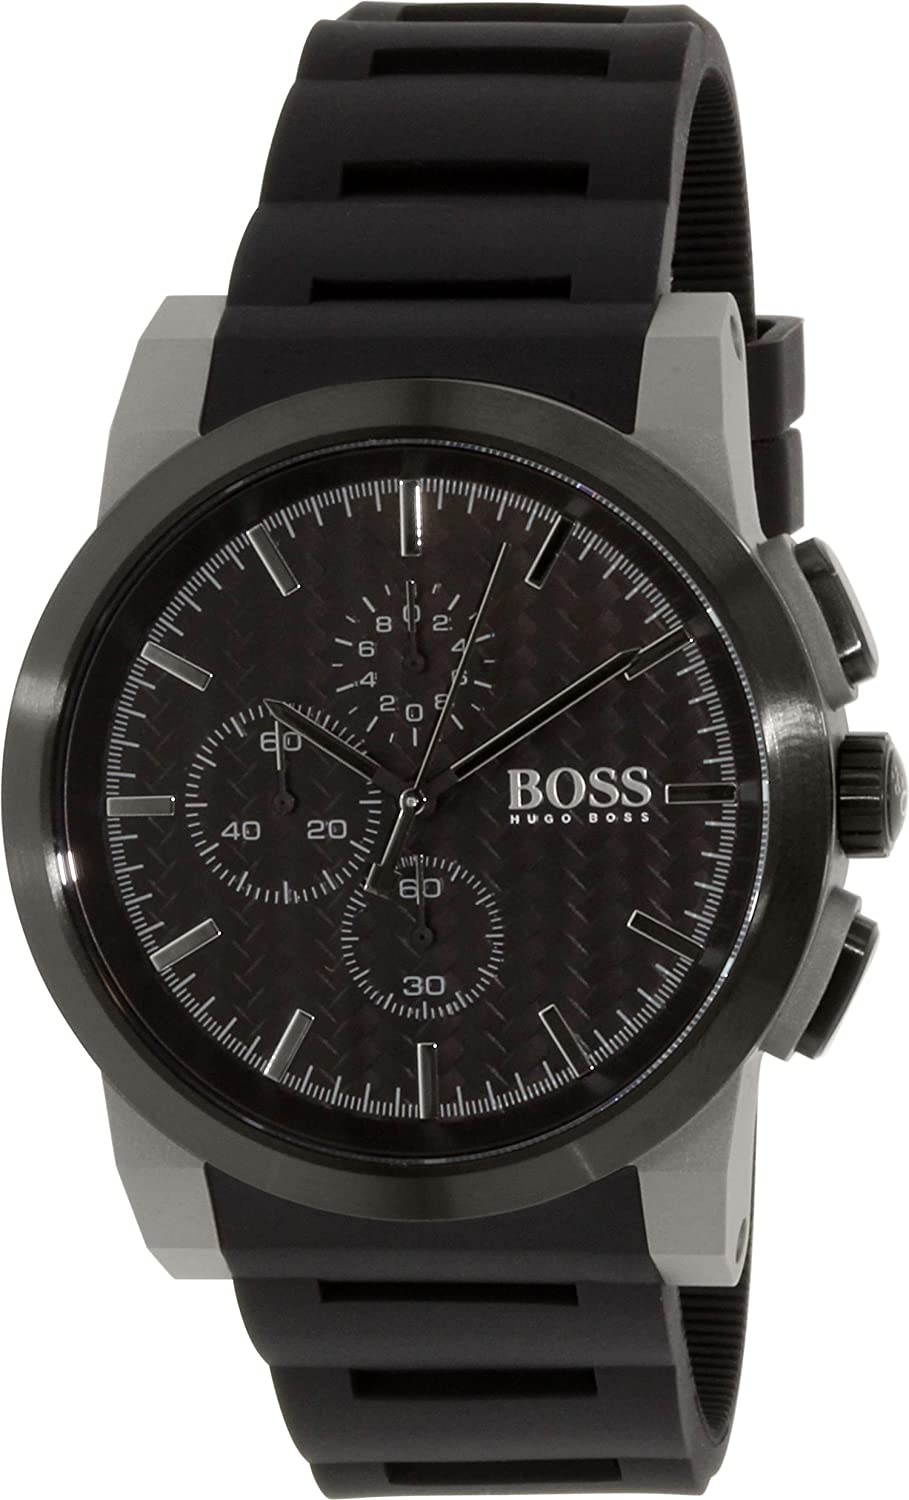 HUGO BOSS WATCH   -Armbanduhr  Analog  Quarz Silikon 1513089_-46